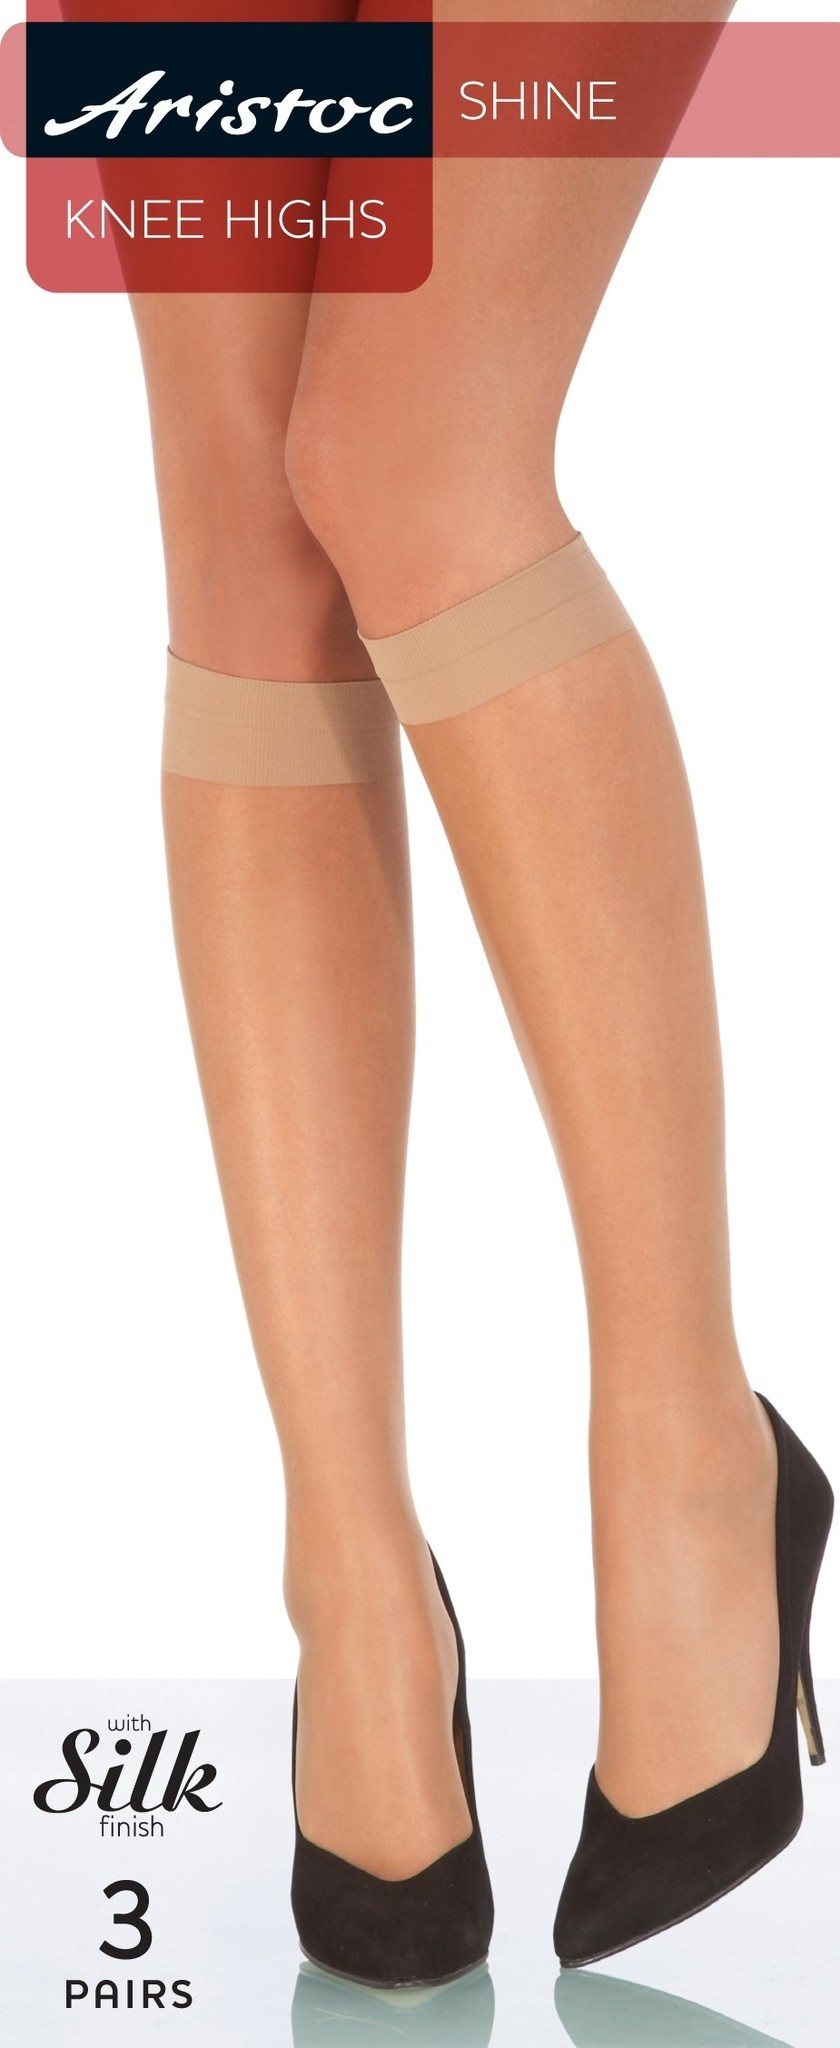 Aristoc Pretty Polly 10 D. Shine Kneehighs with silk finish 3 pair